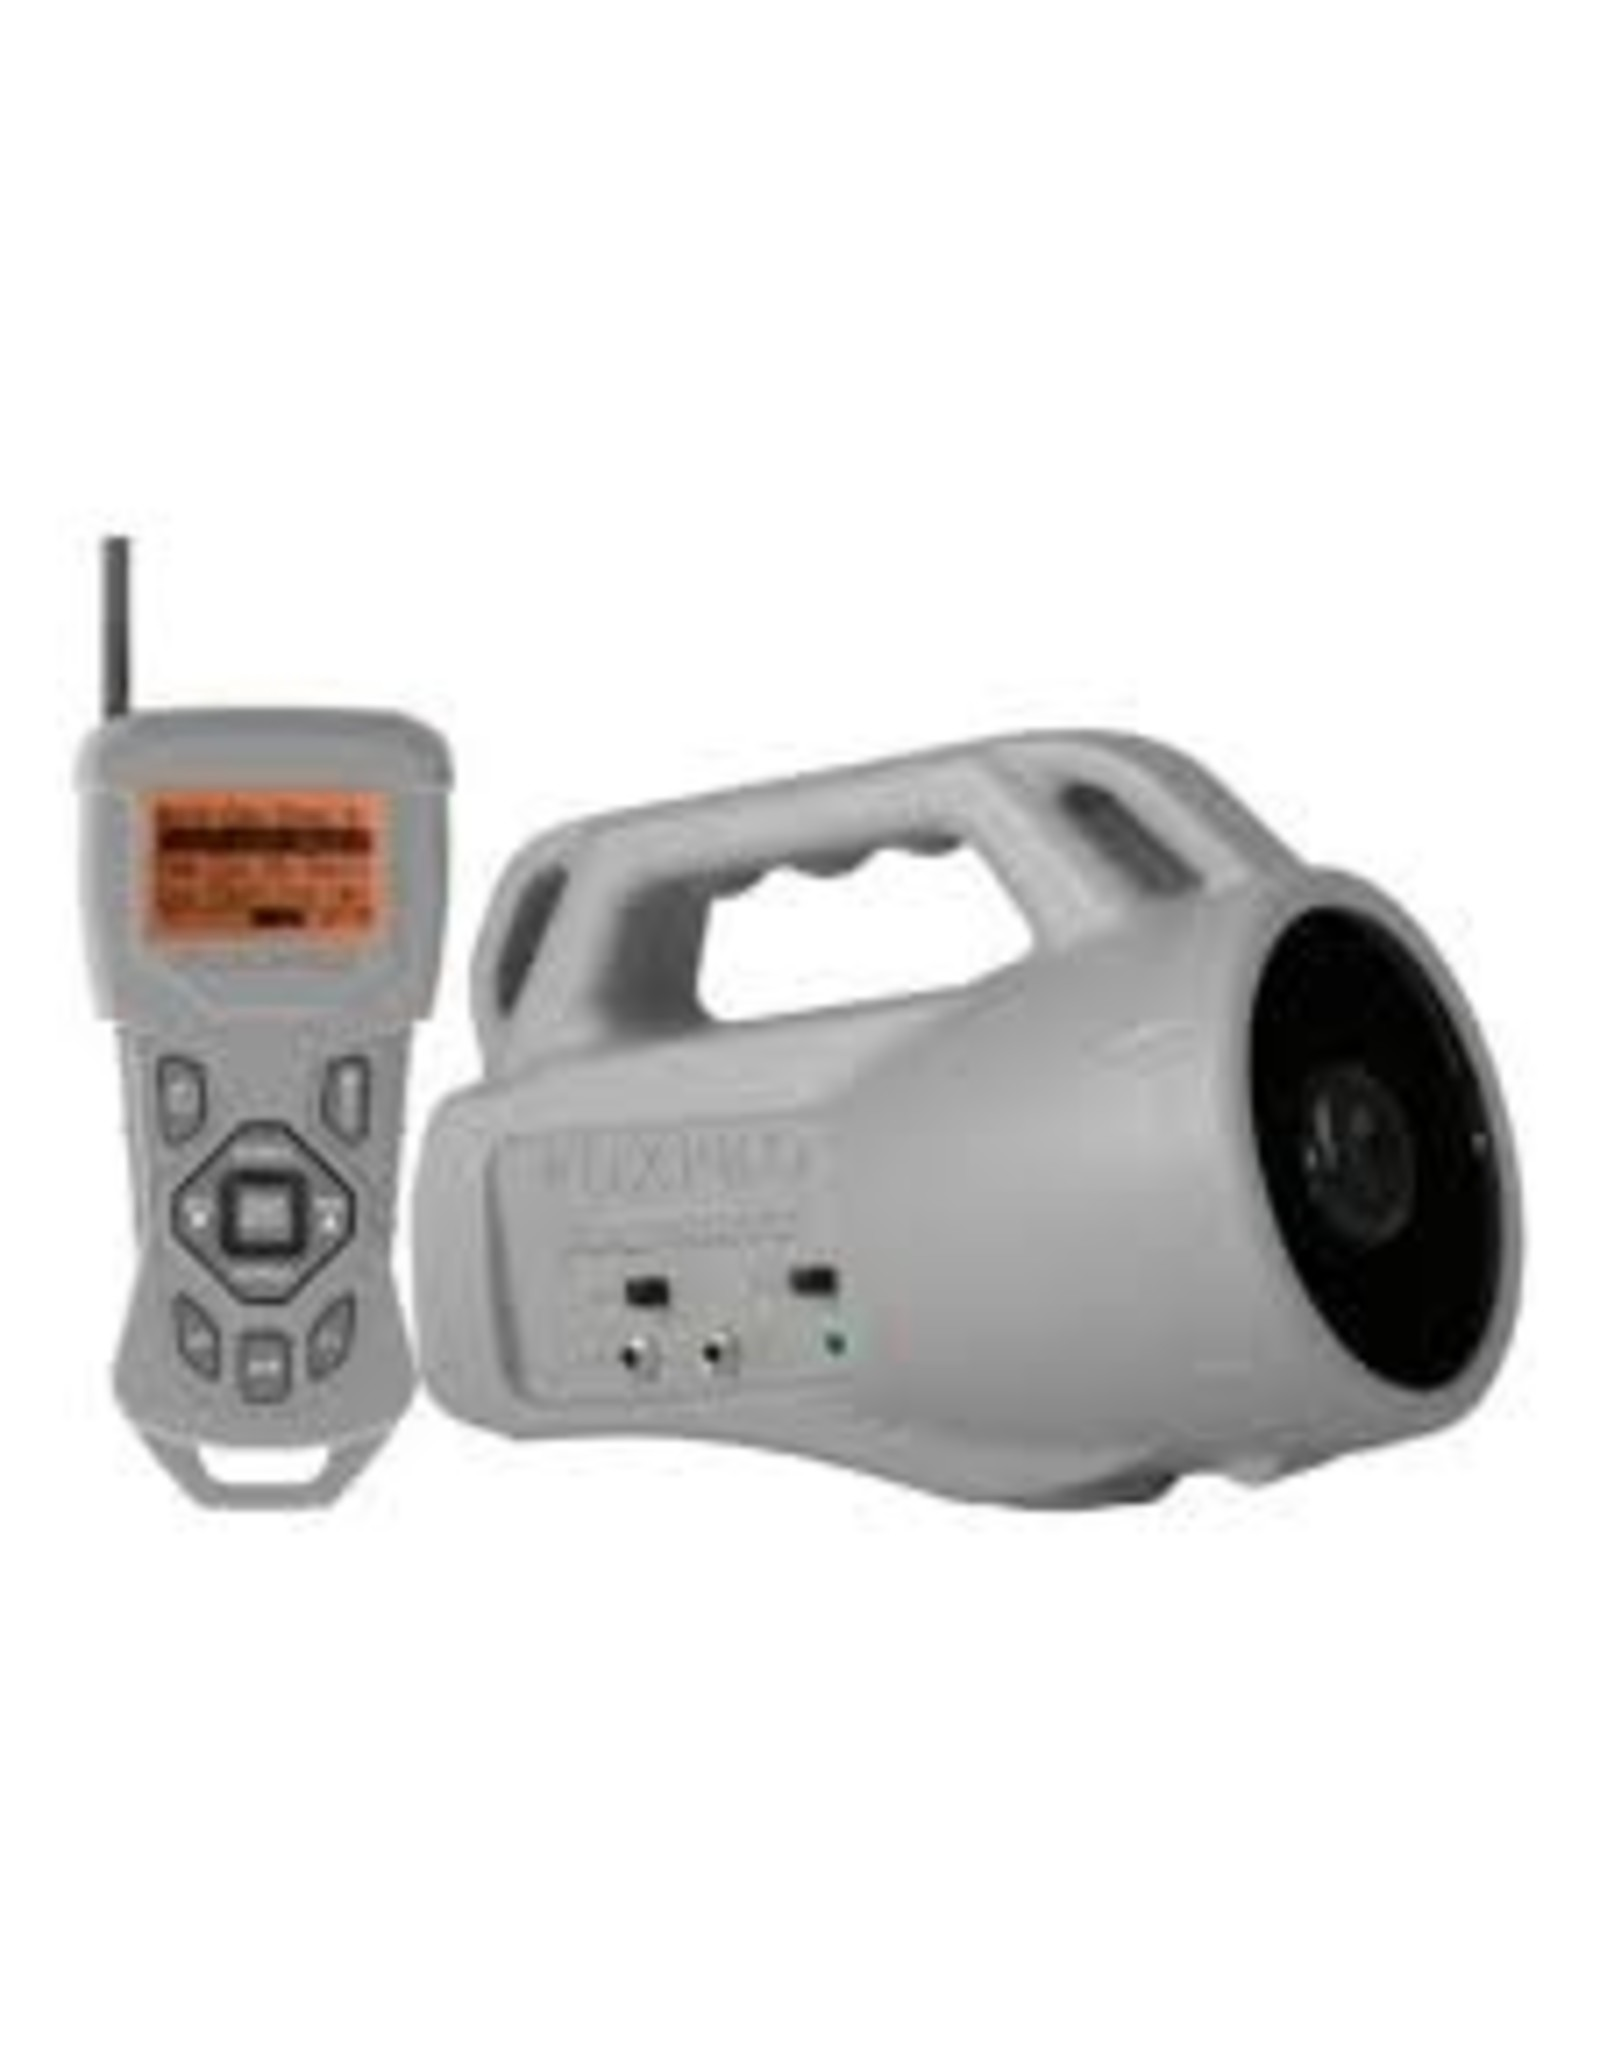 Foxpro Foxpro Patriot High Performance Game Call